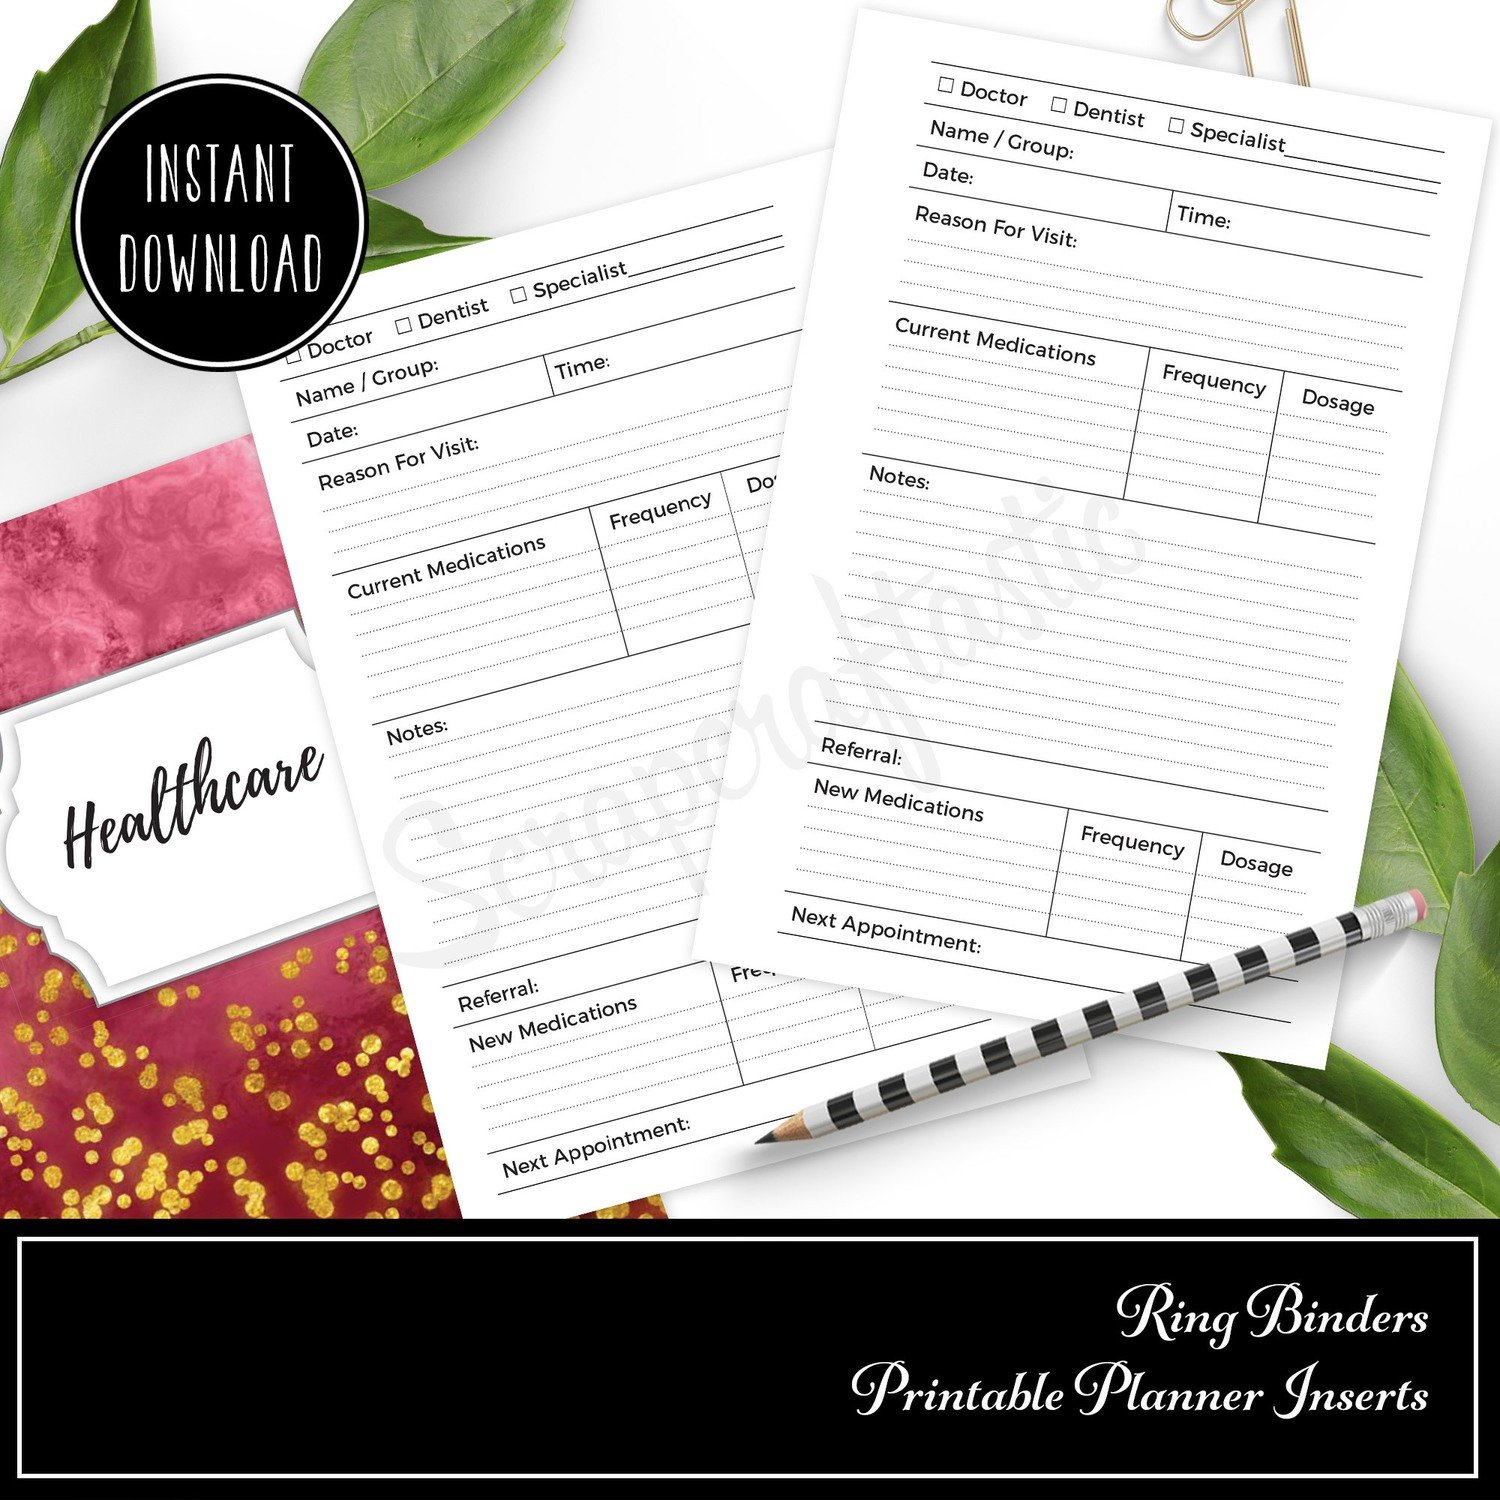 PERSONAL RINGS - Healthcare Visit Log Ring Binder Printable Insert